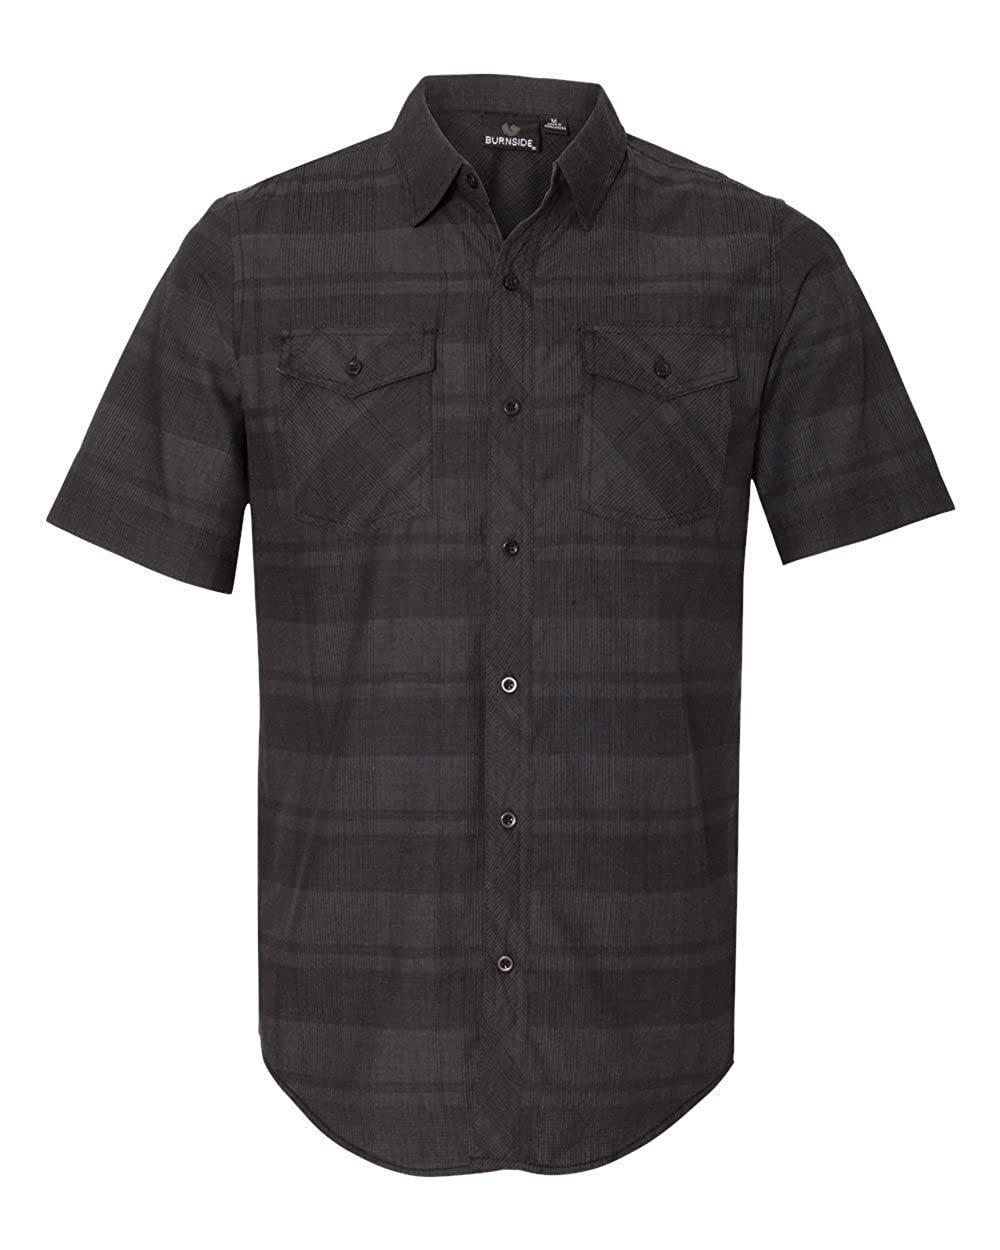 Burnside Mens Plaid Short Sleeve Shirt 9202